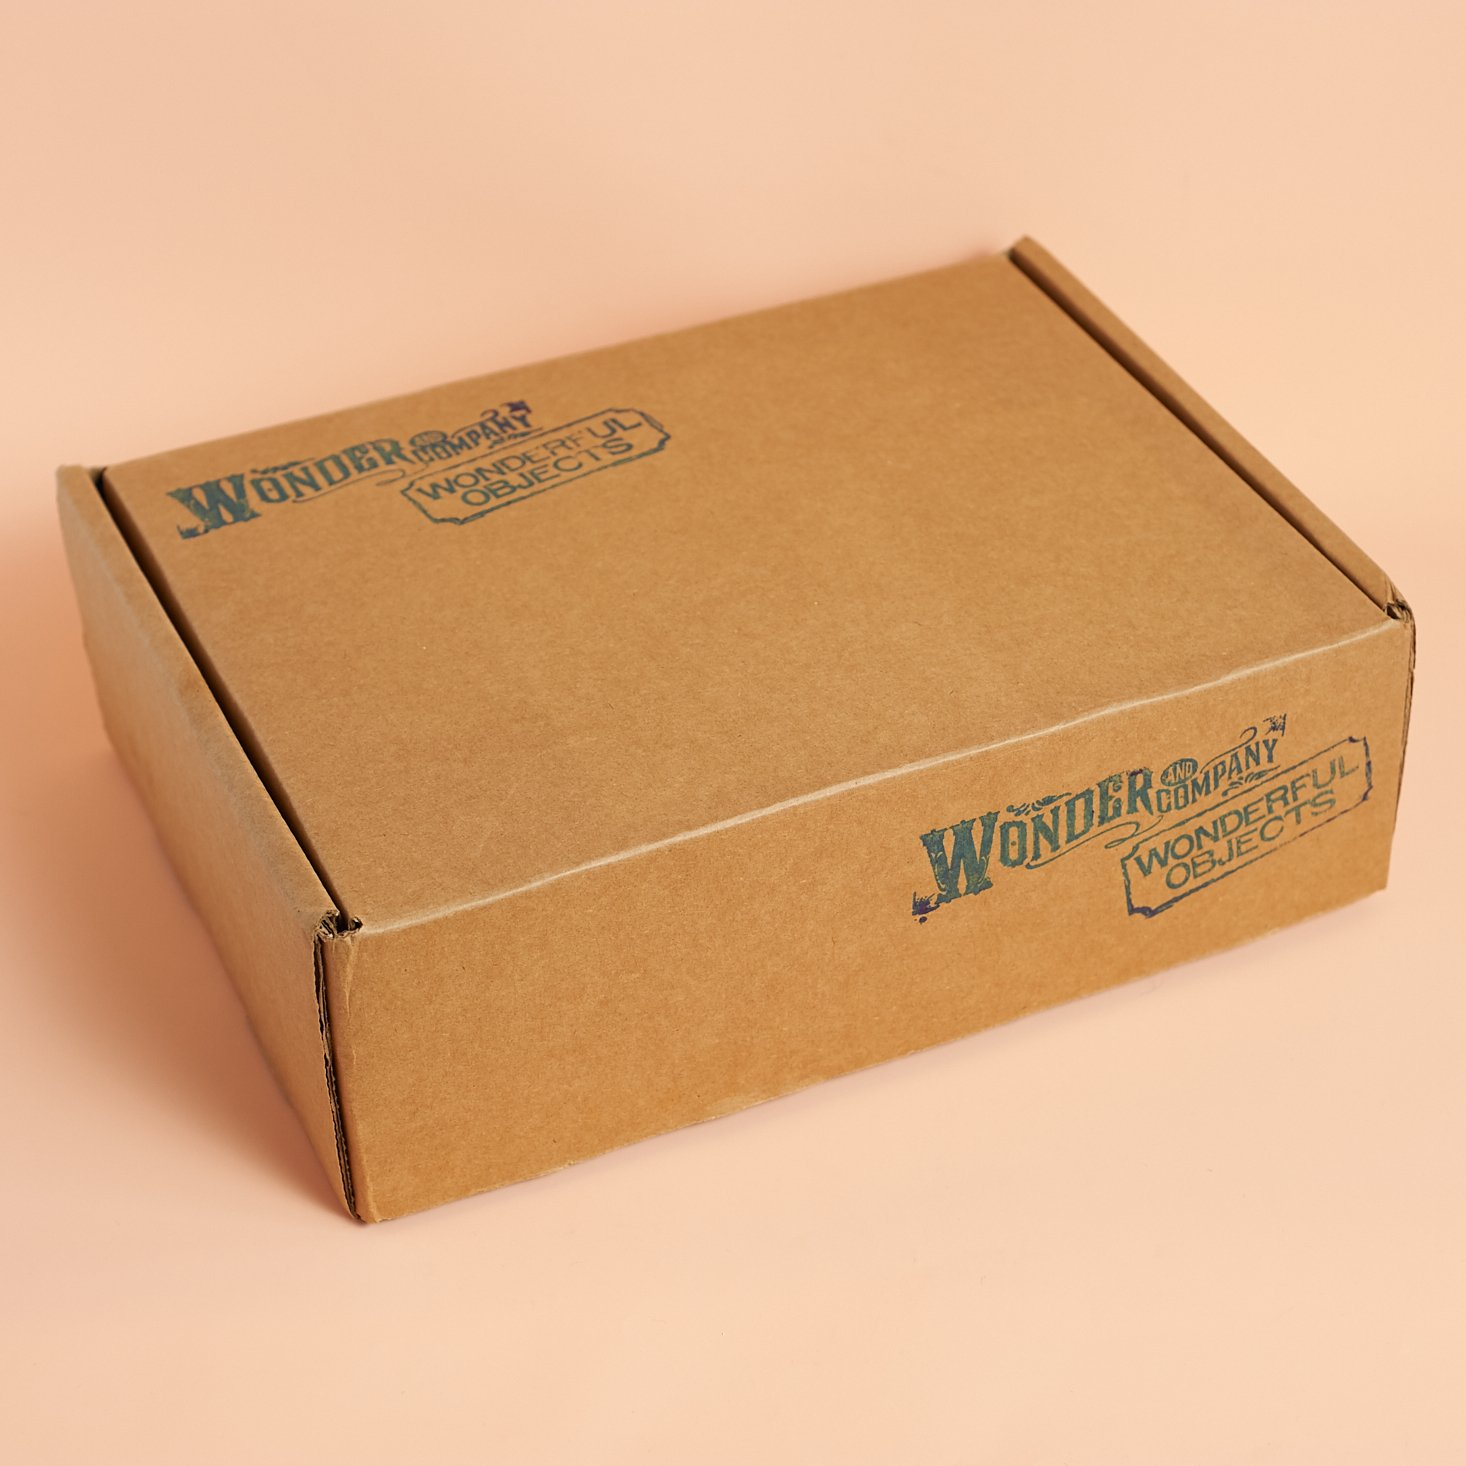 wonderful-objects-co-box-october-2016-0001